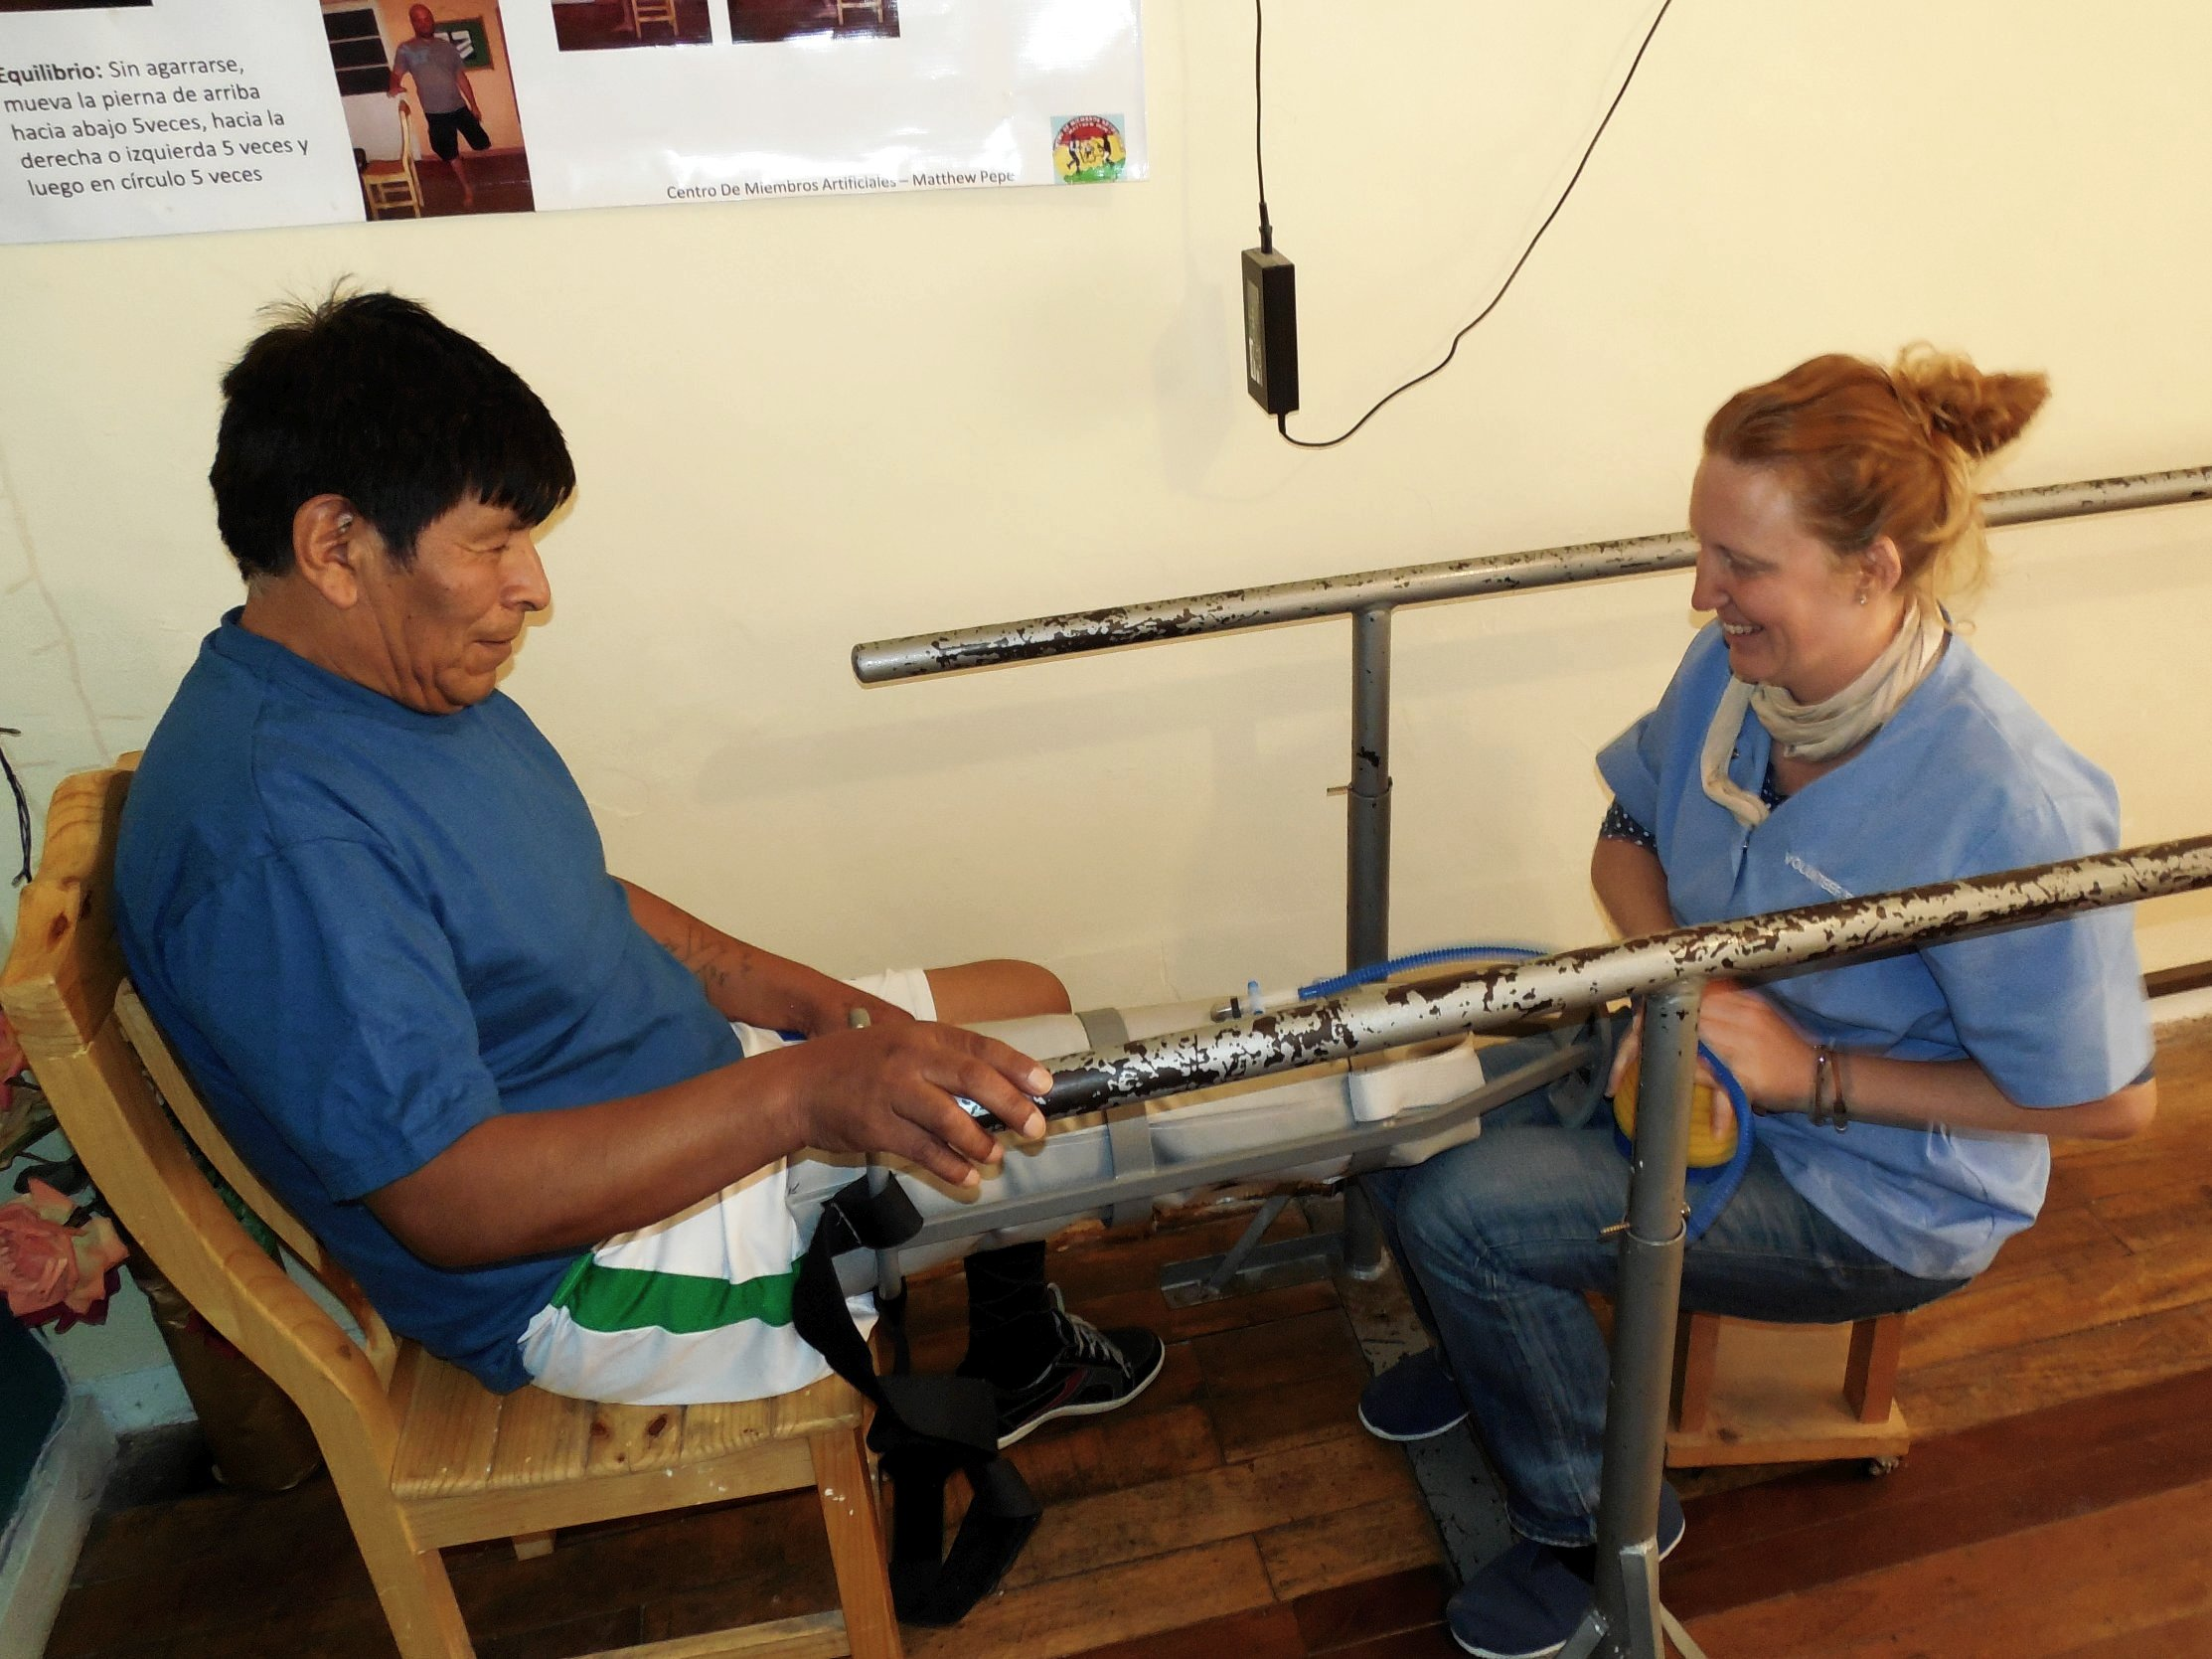 bolivians-without-disabilities-lucas-fitting-ppam-aid-3-b